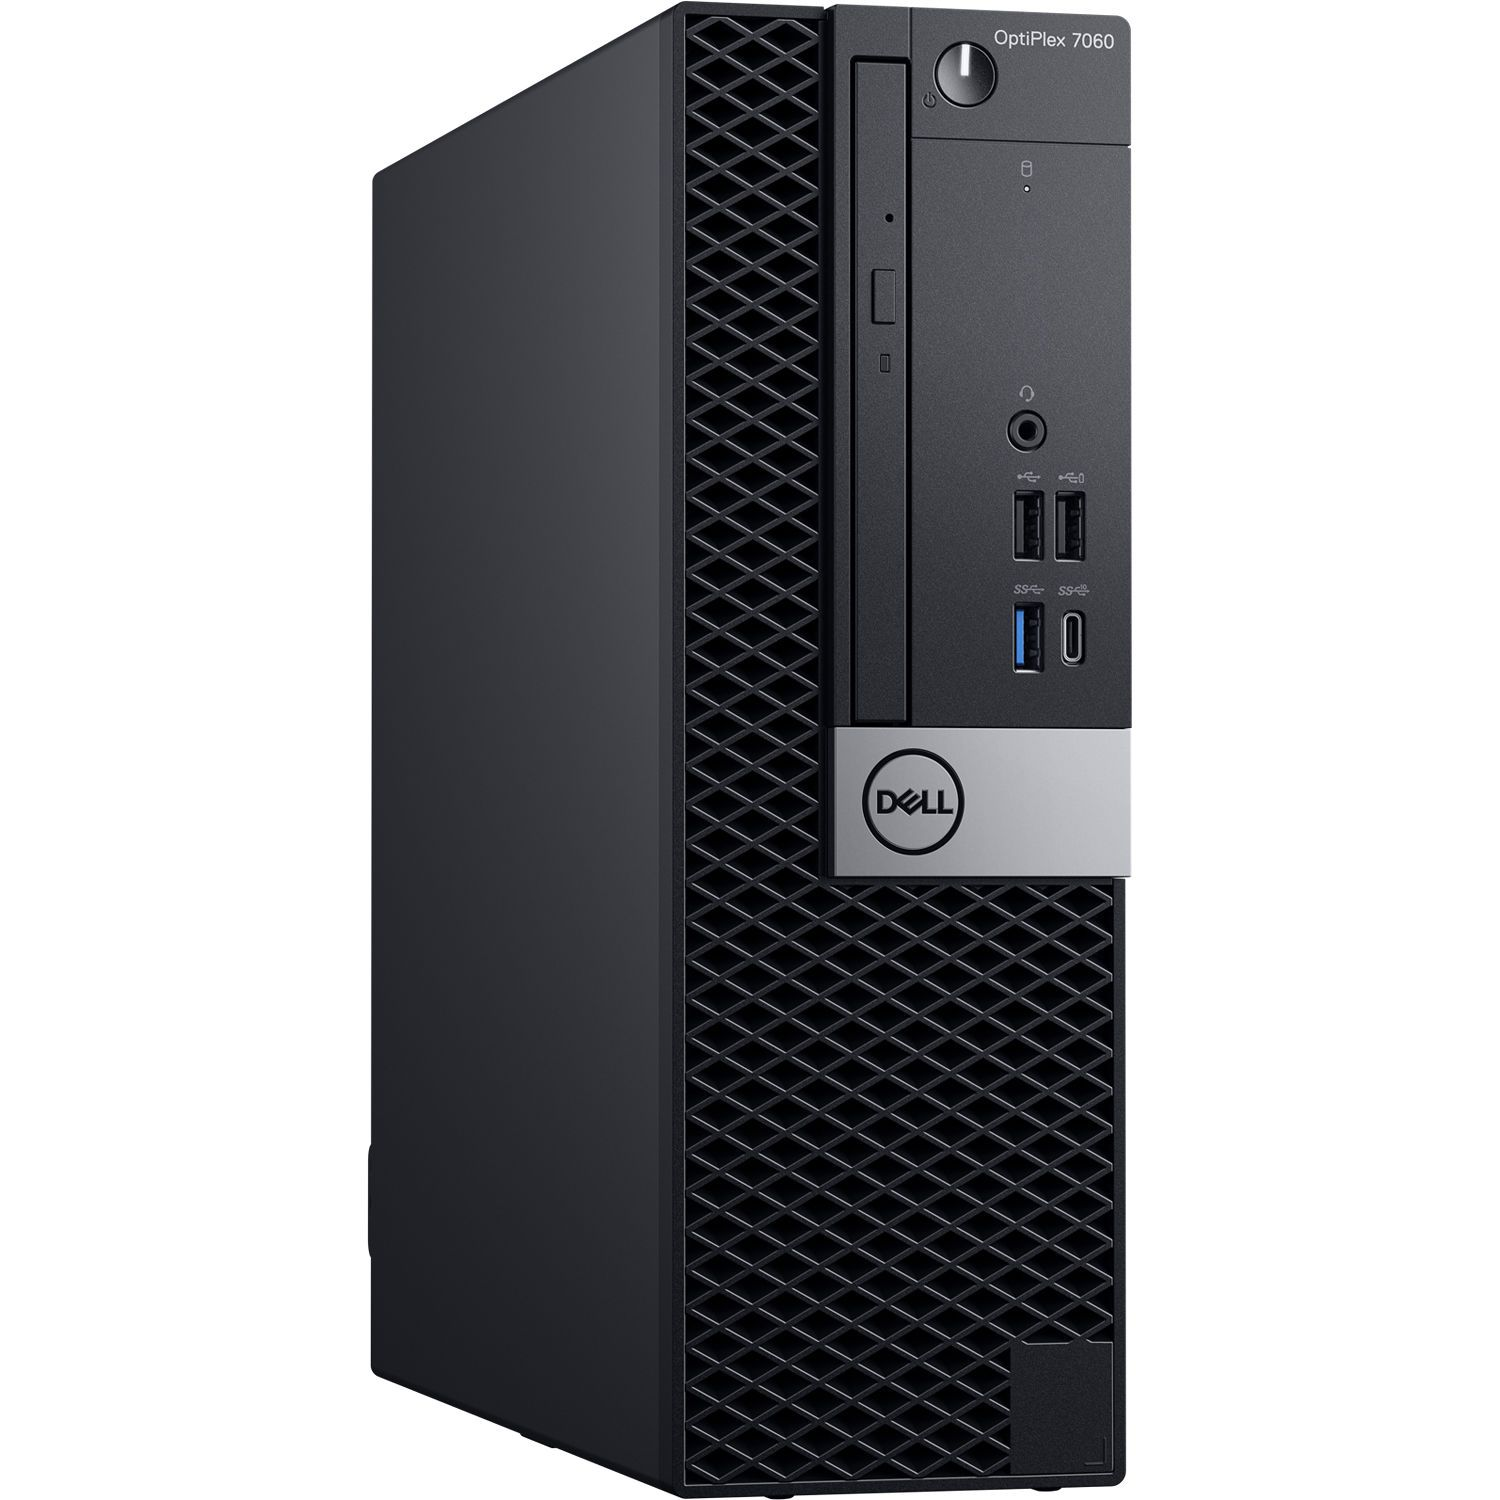 Microcomputador Dell Optiplex Small 3070 i3-9100| 4GB DDR4| HD 500GB| DVD| Tec+mse| Win10 Pro